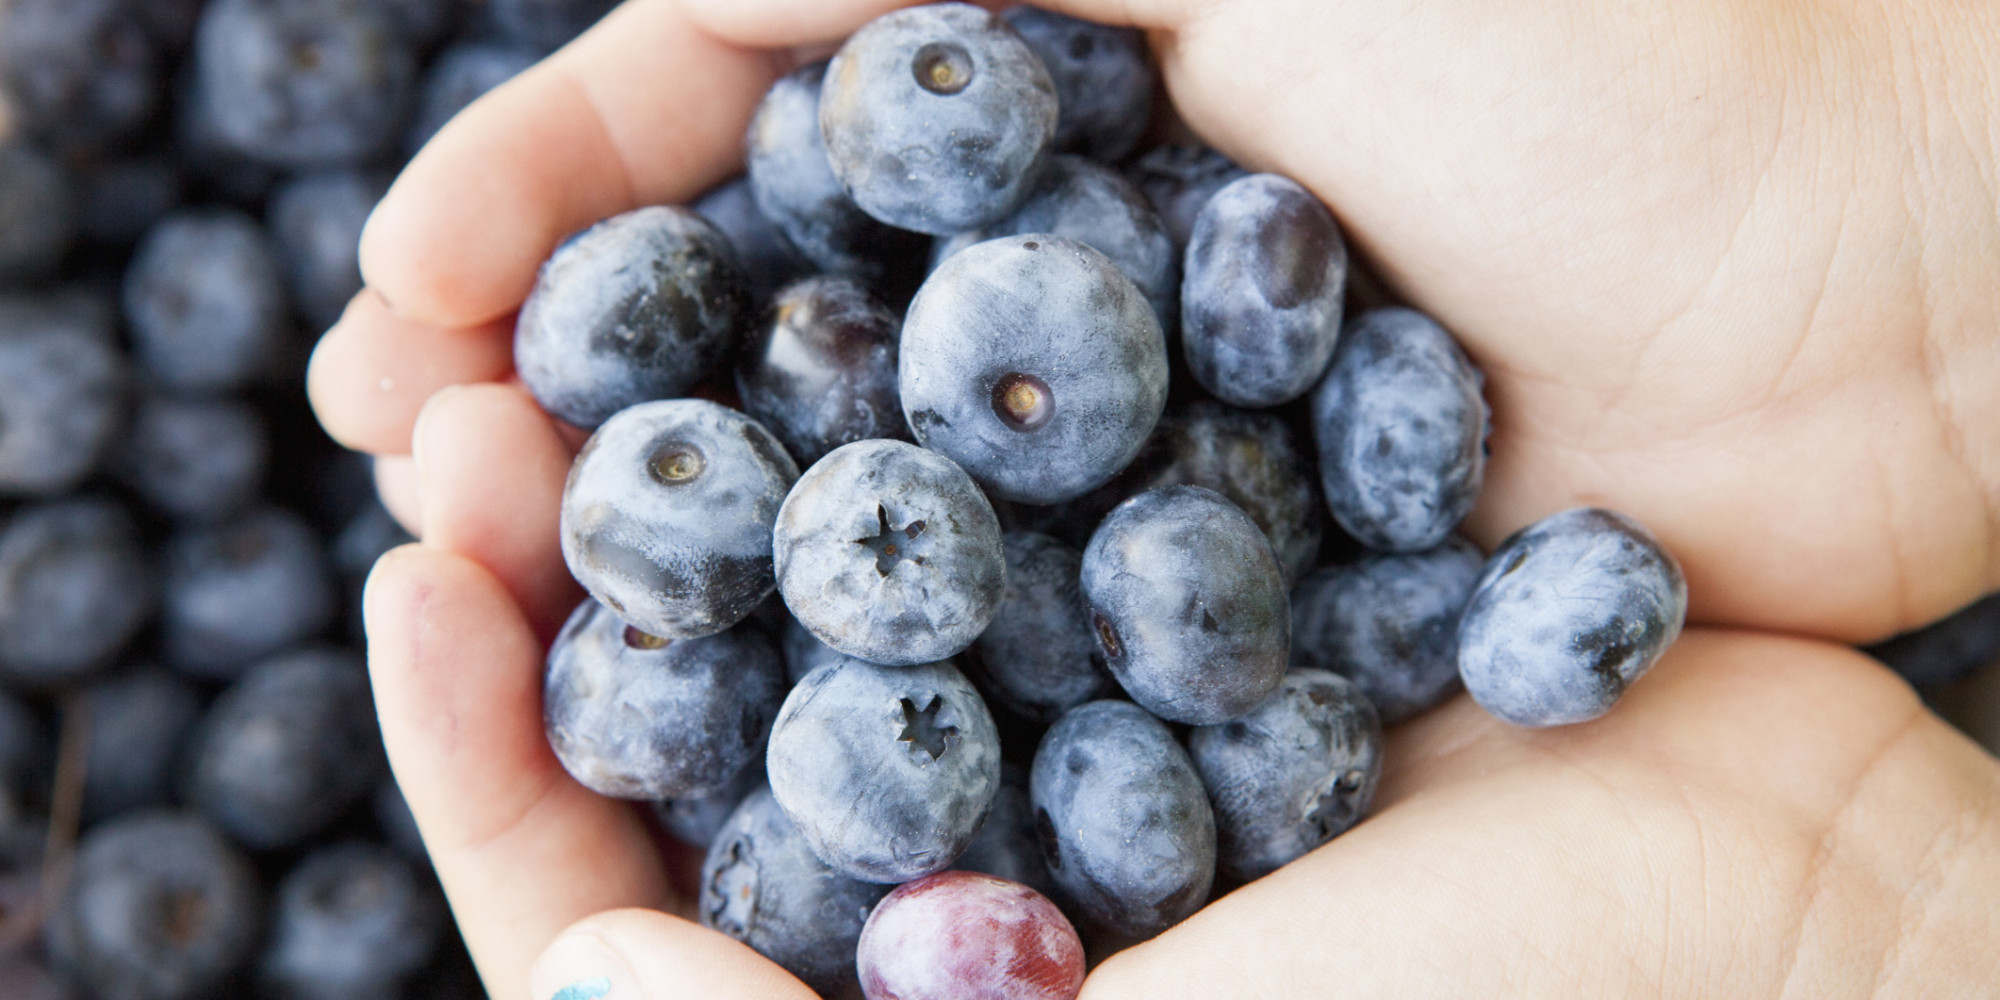 Foods that help with erectile dysfunction